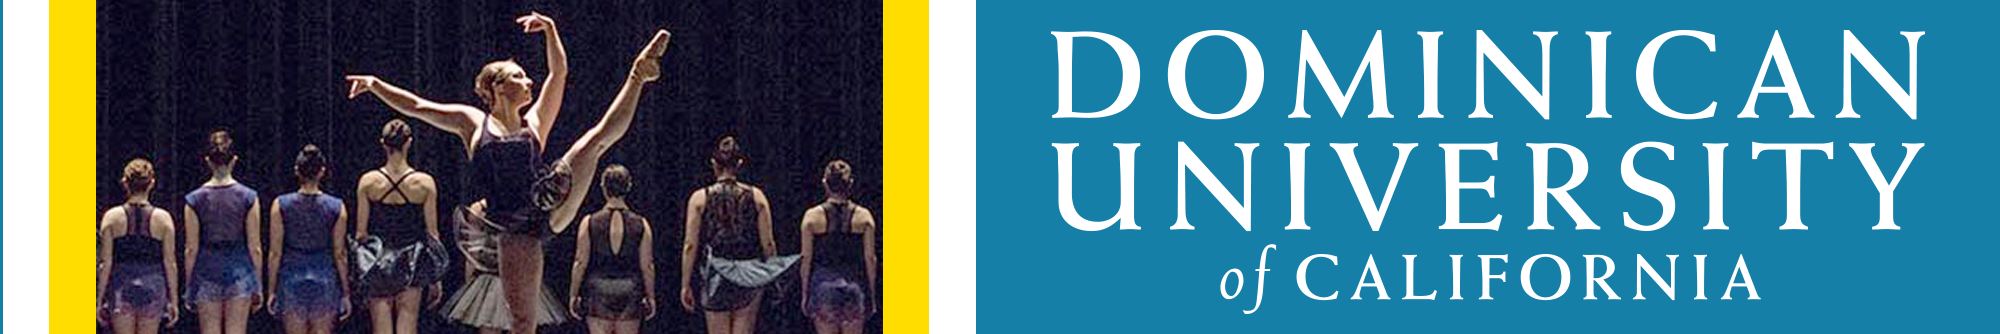 Dominican University | Events and Conference Services Ticketing